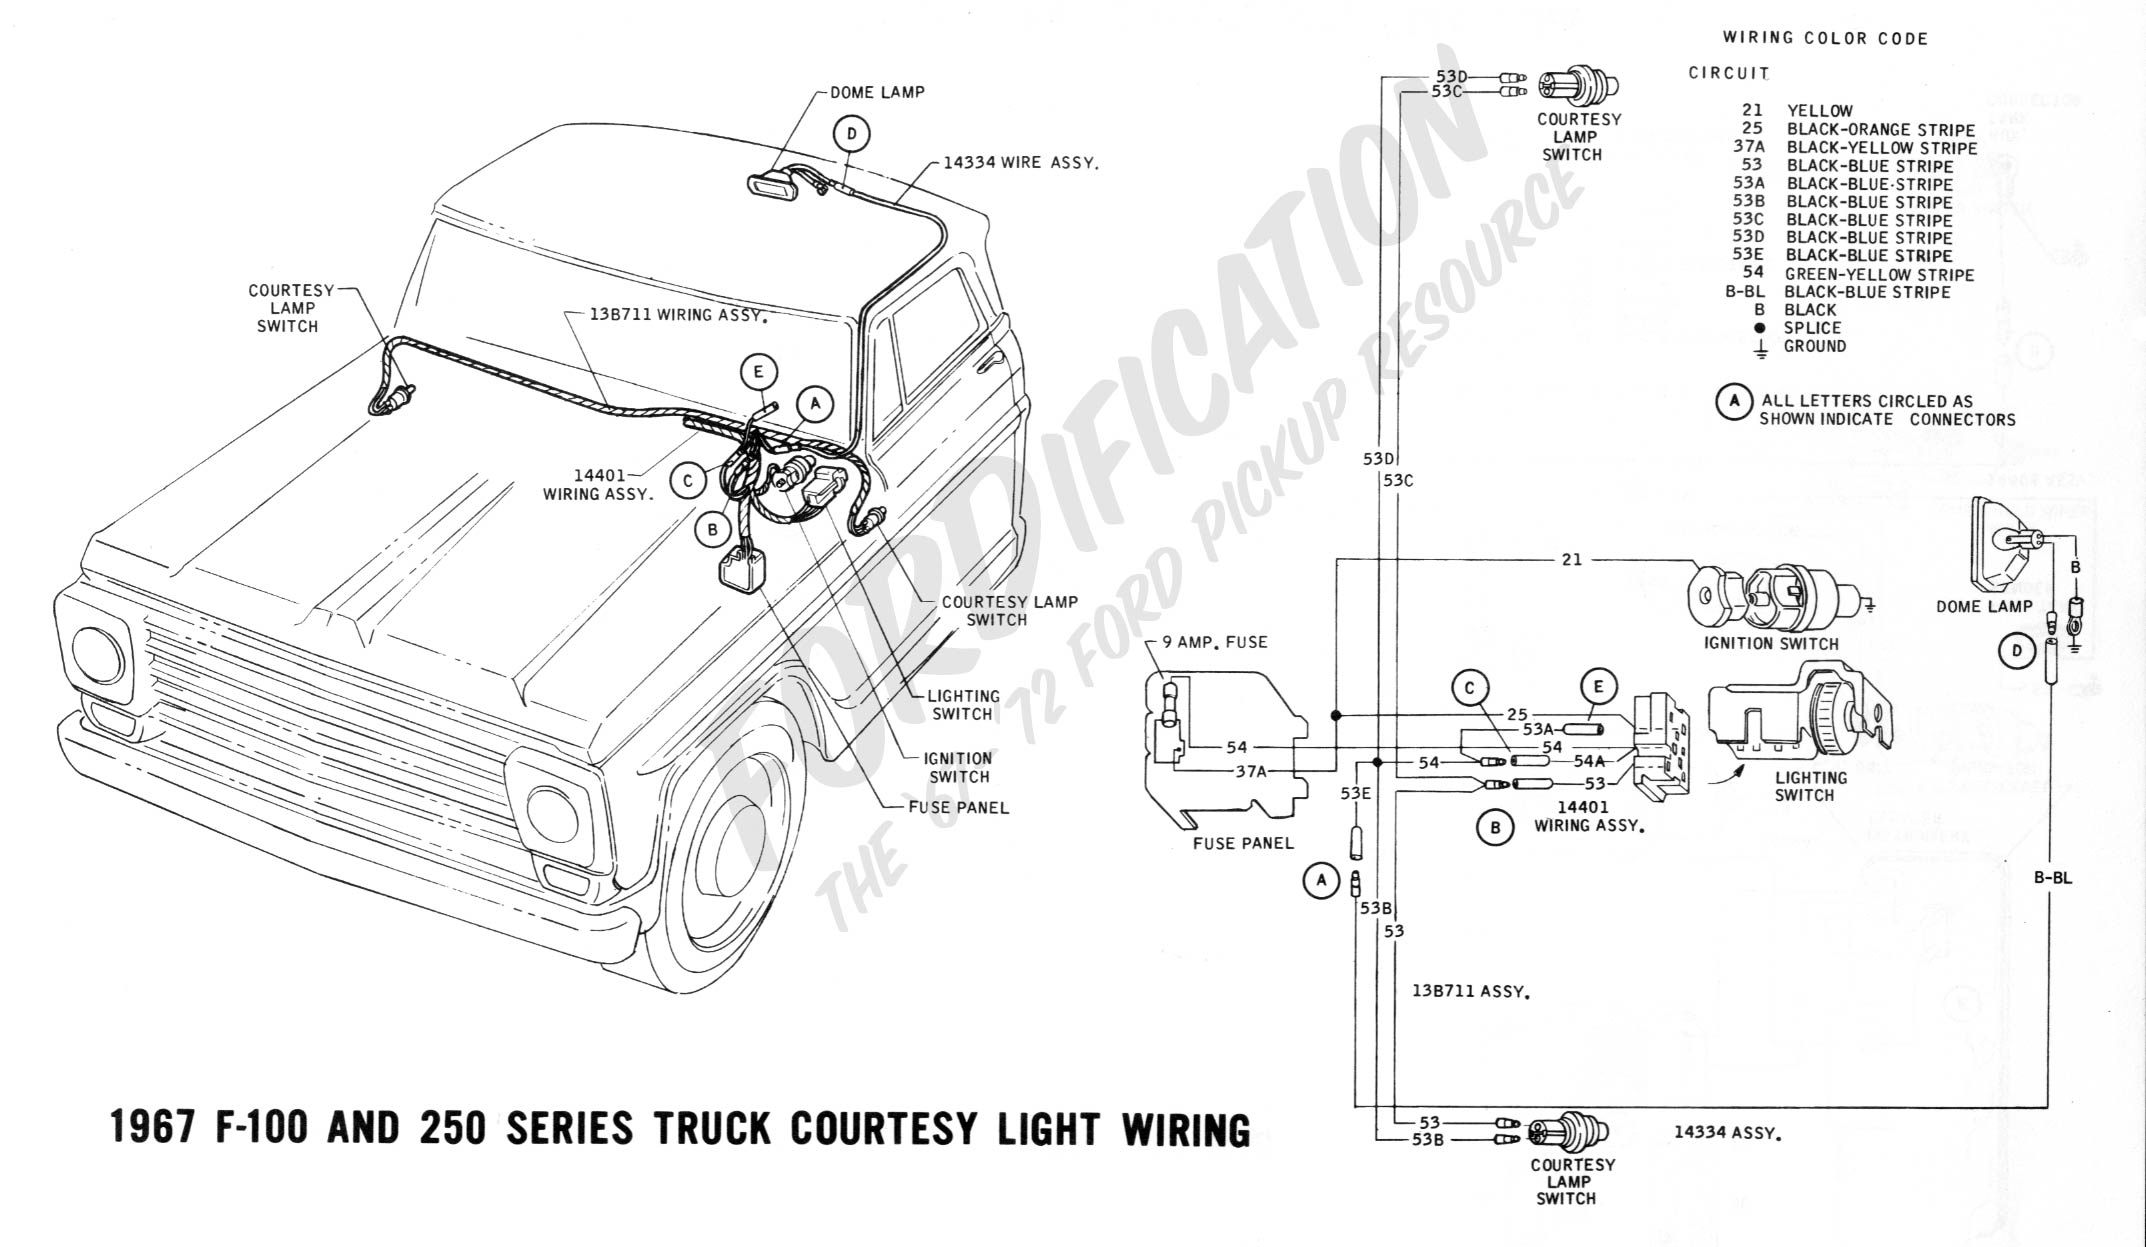 wiring 1967courtesylight ford truck technical drawings and schematics section h wiring ford ignition switch diagram at webbmarketing.co